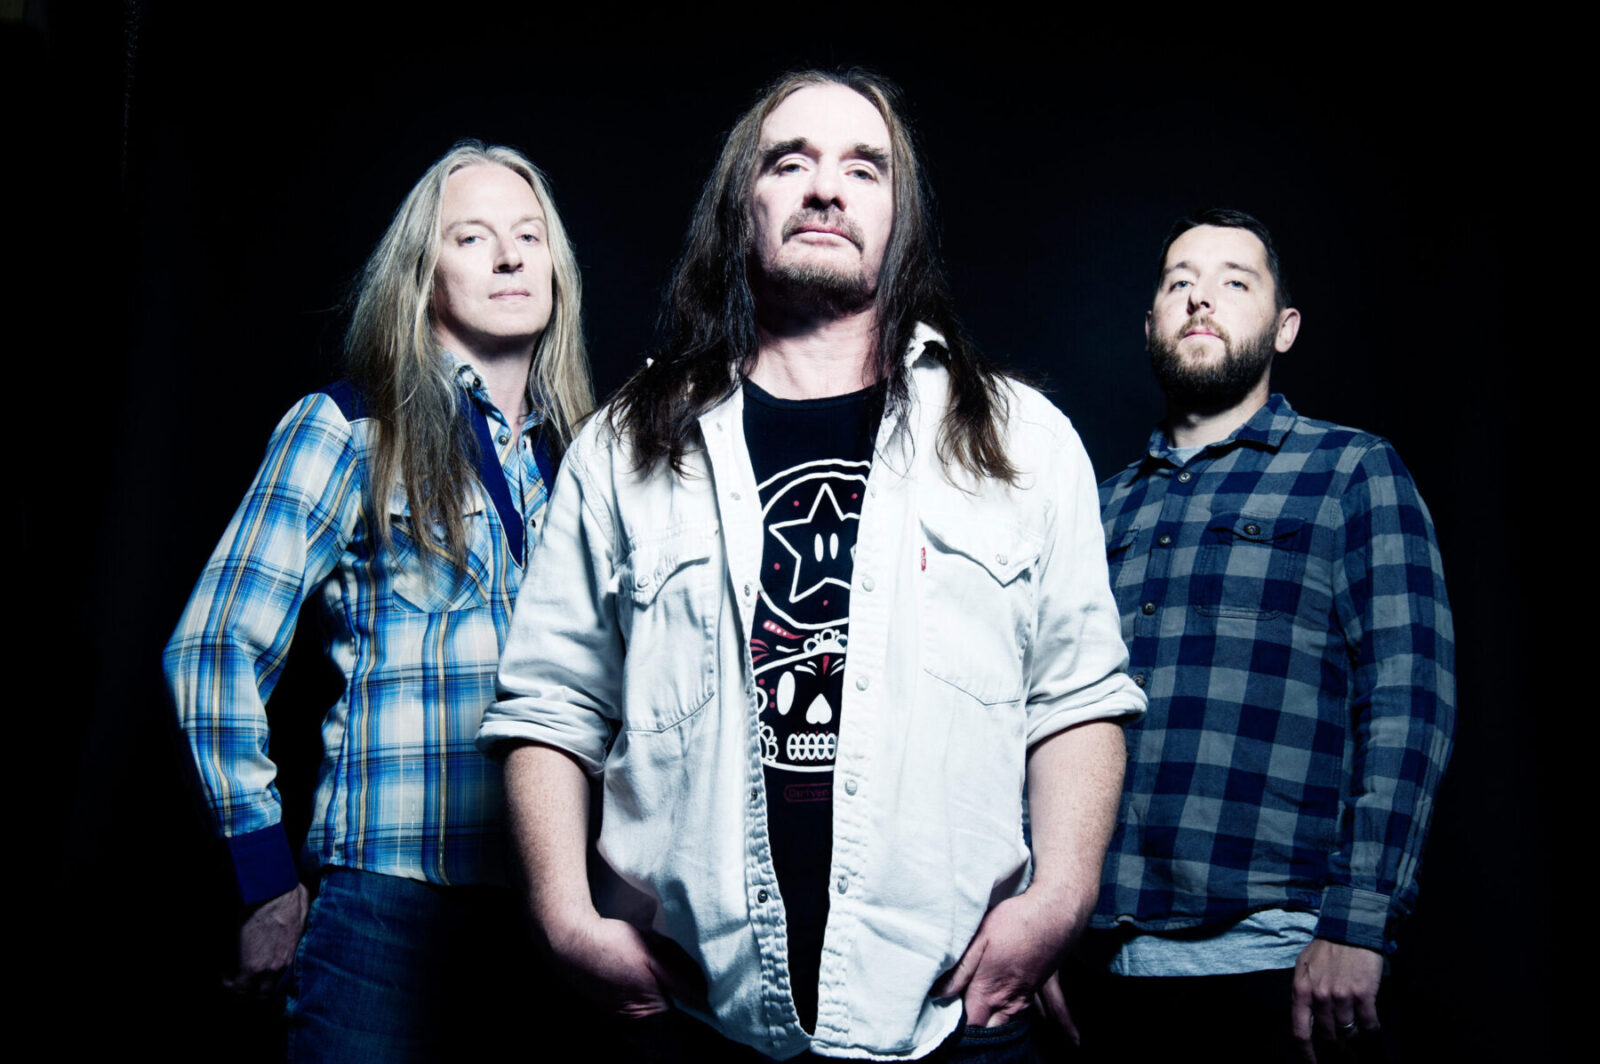 CARCASS interview. New album, 'Torn Arteries', out on September 17th.